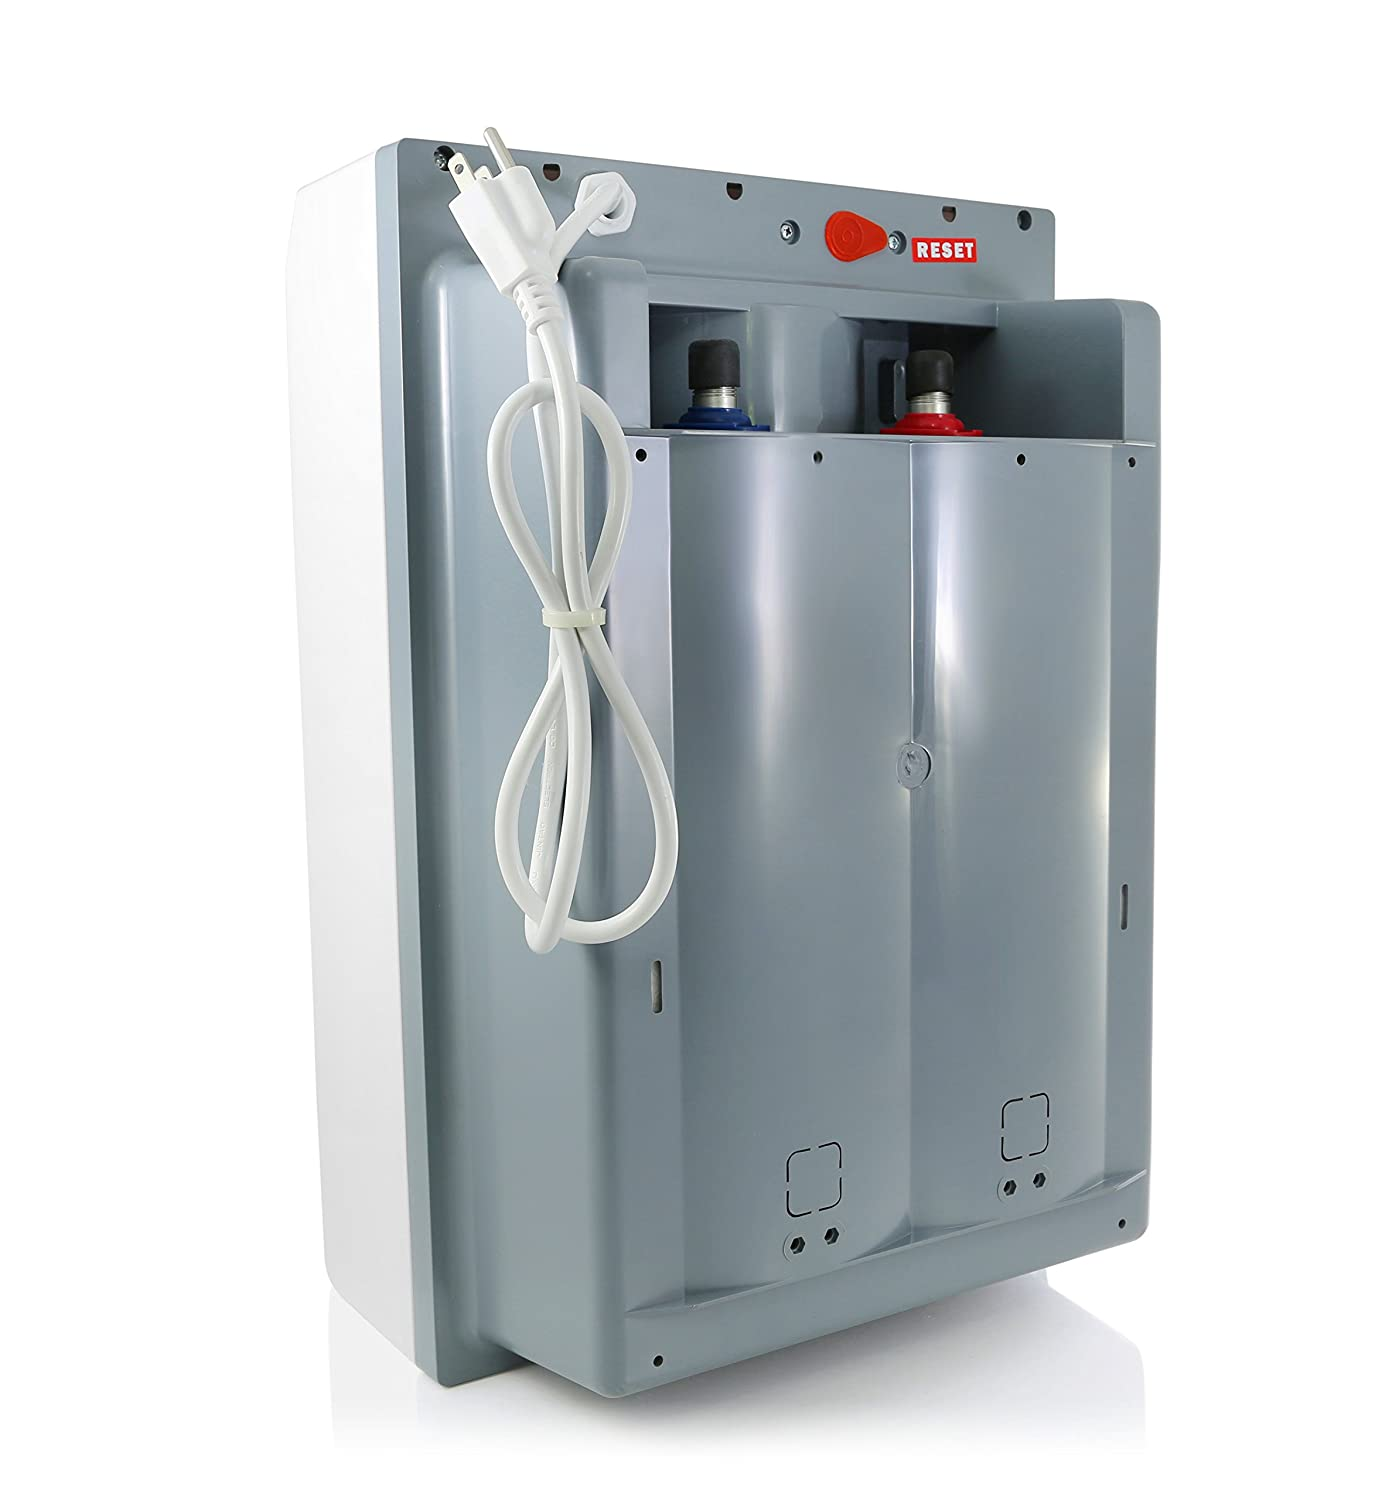 2.6 Gallon Under Sink Water Heater Electric - Point of Use Electric ...